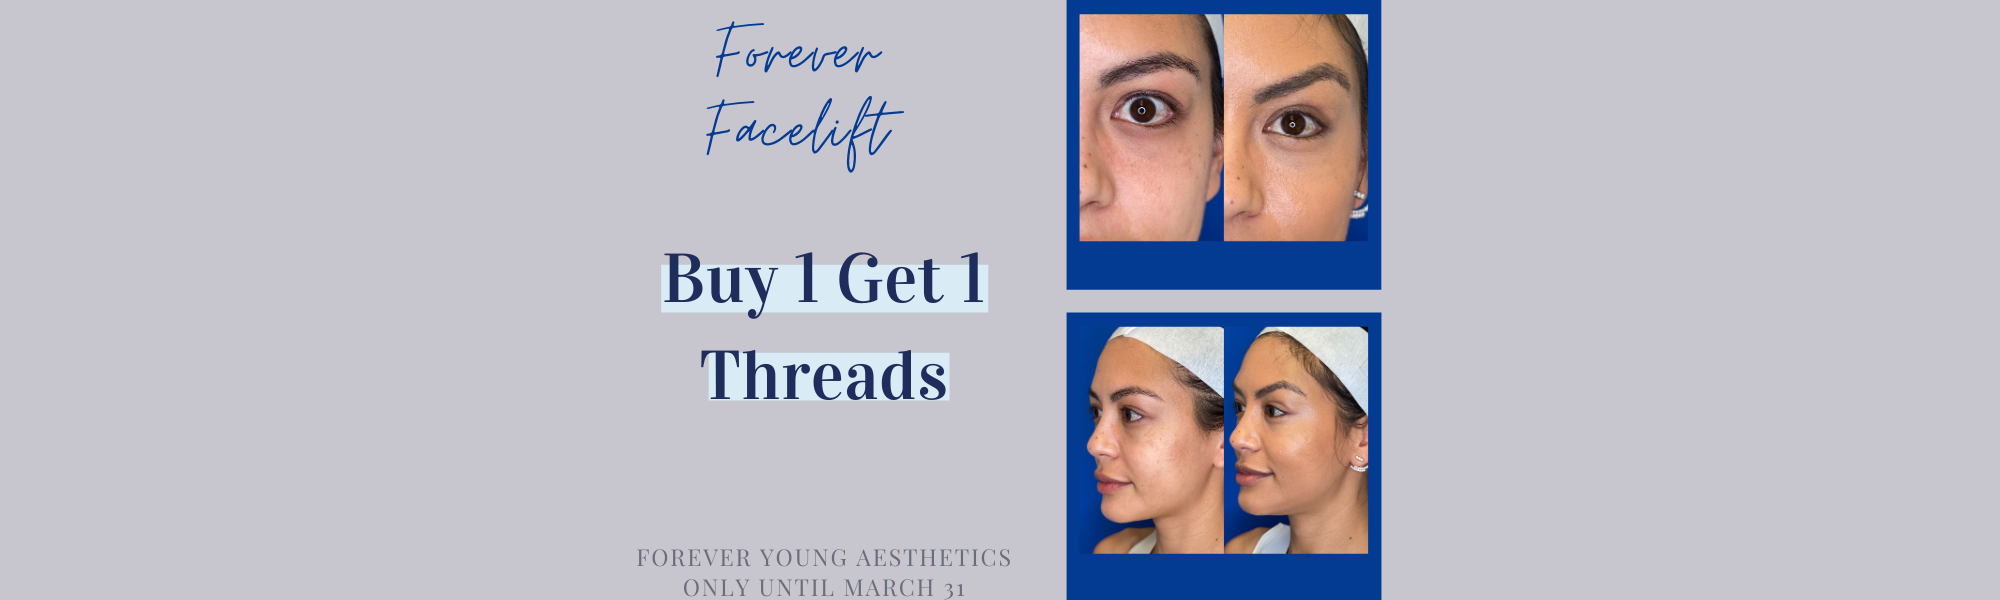 South Tampa Events and Promos at Forever Young Aesthetics in South Tampa FL